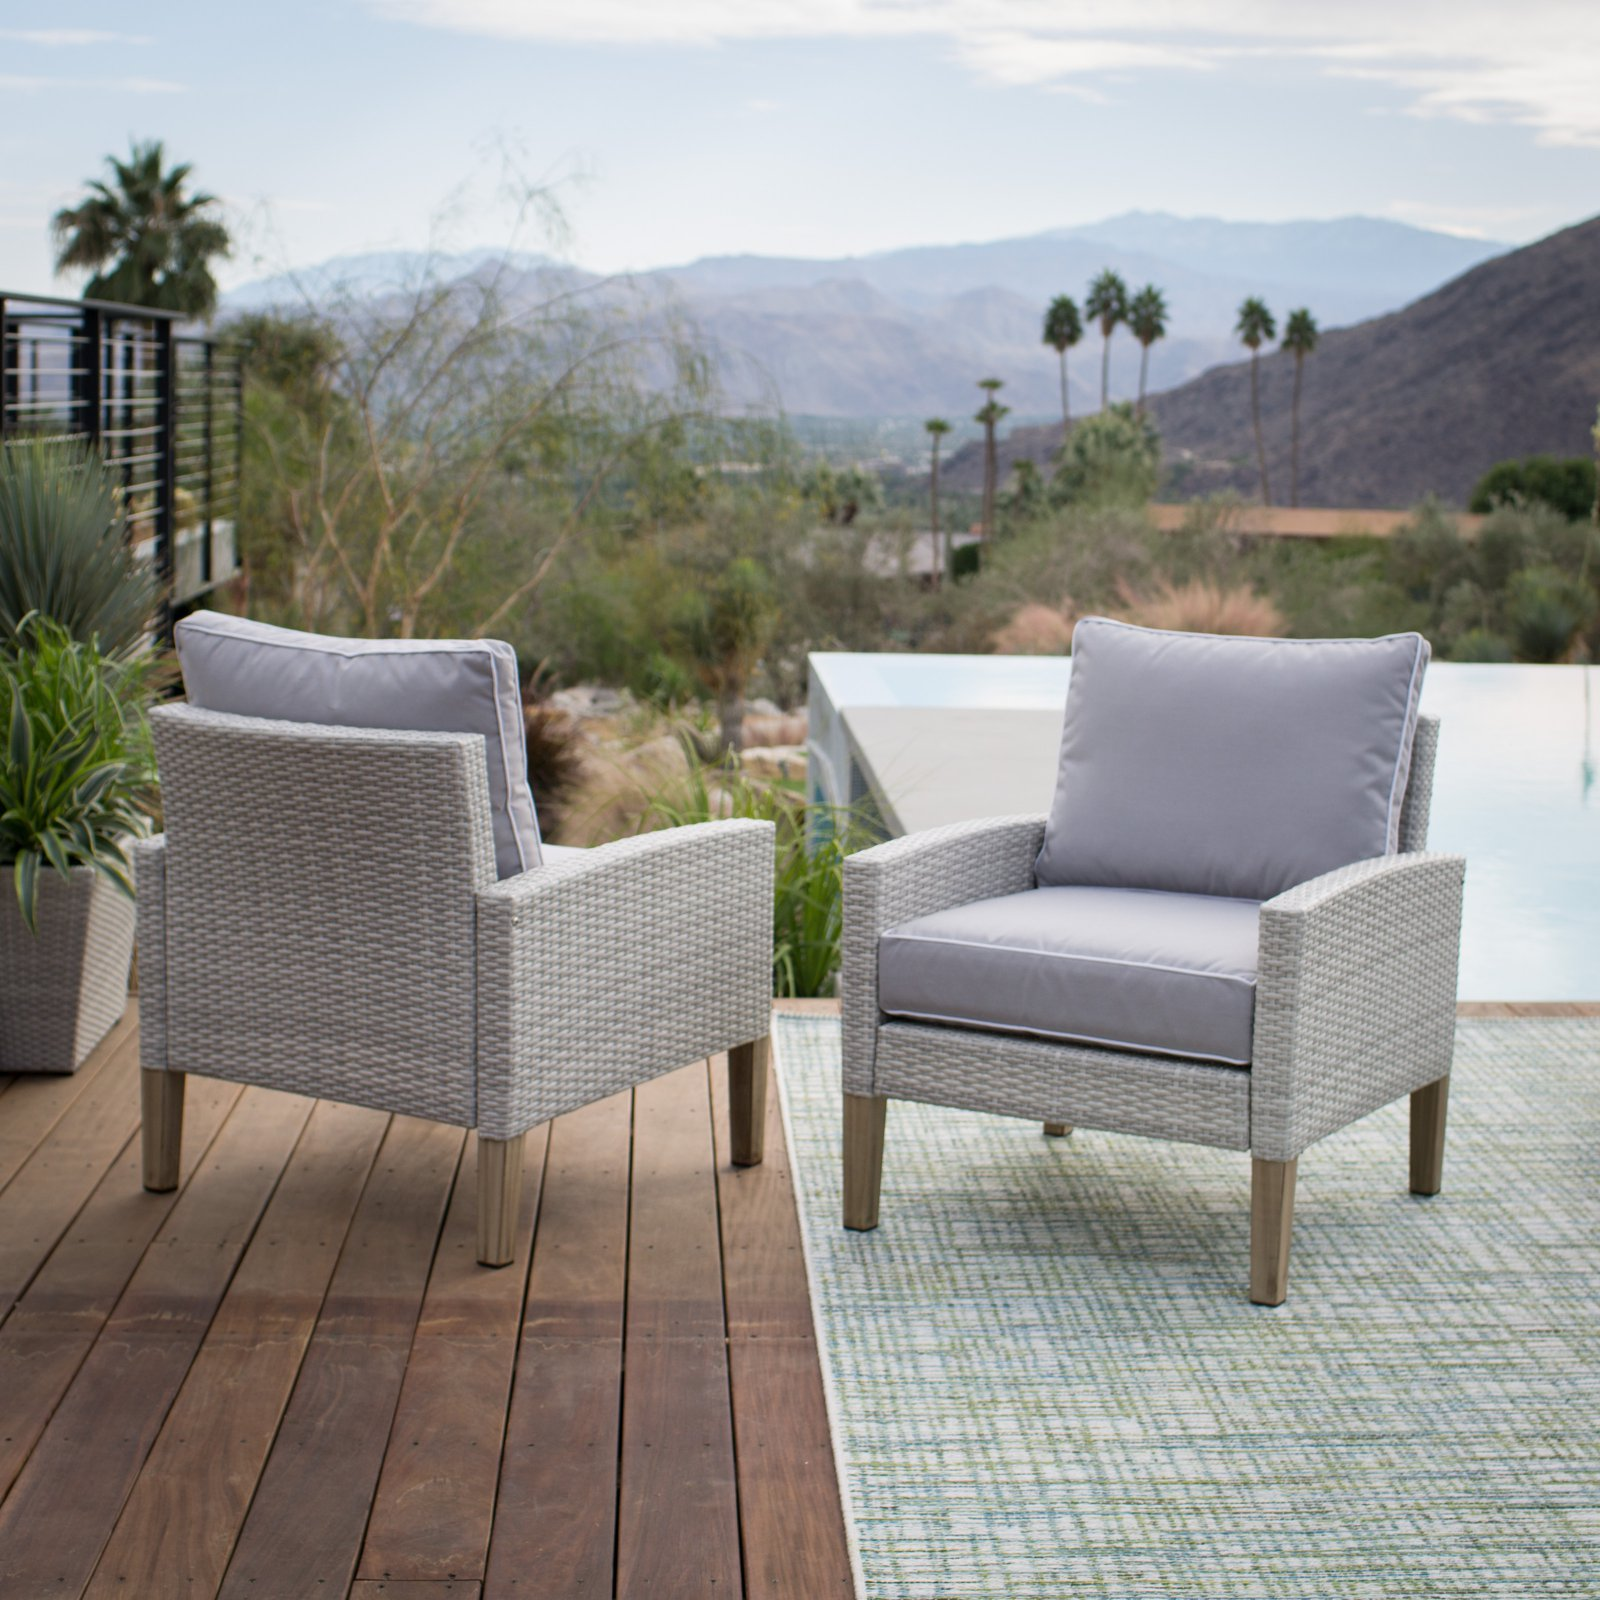 Belham Living Clermont All Weather Wicker Chairs